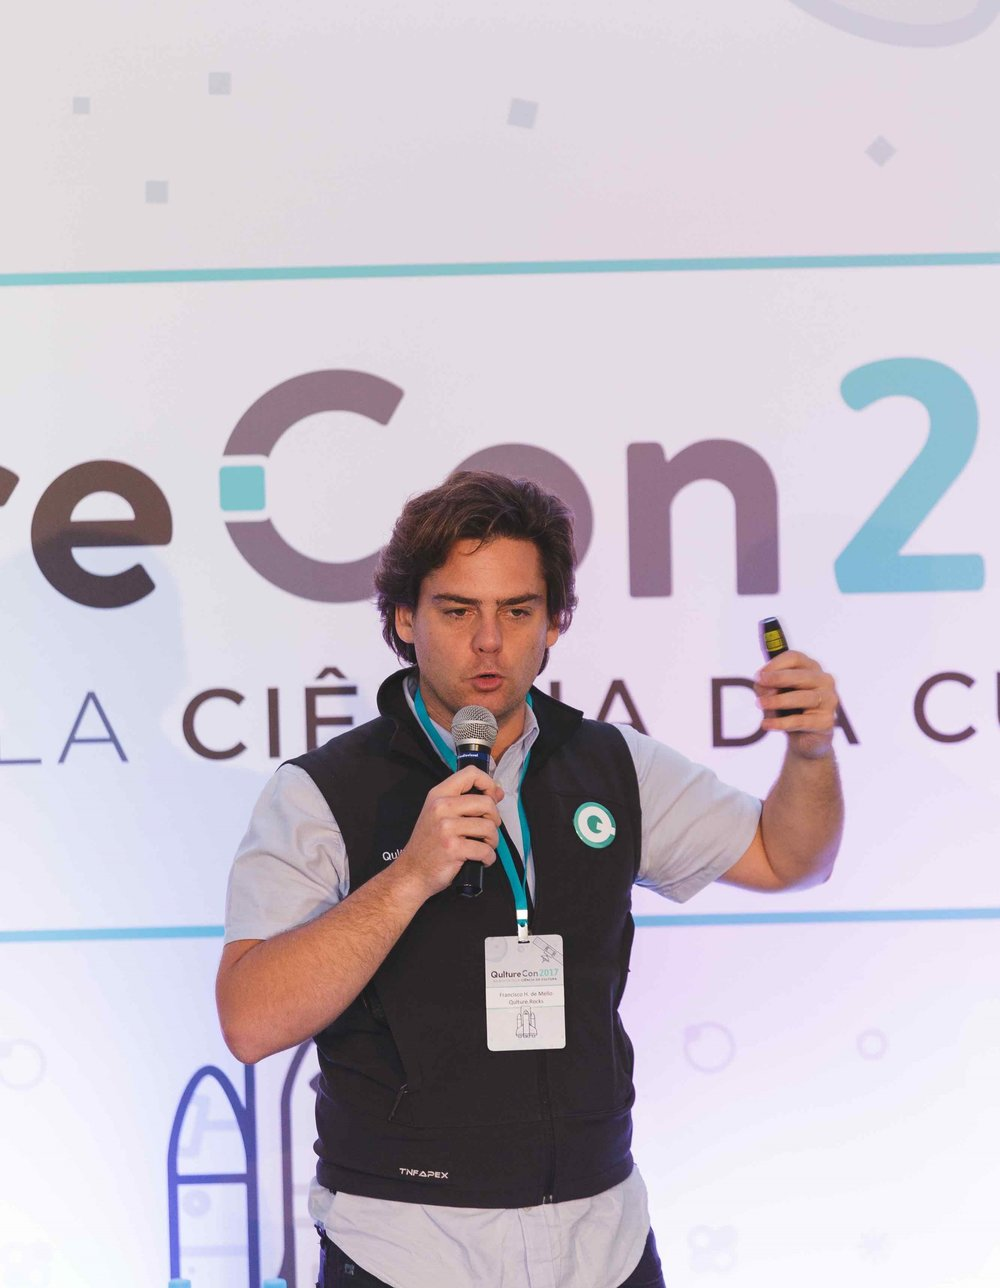 Francisco Mello - CEO